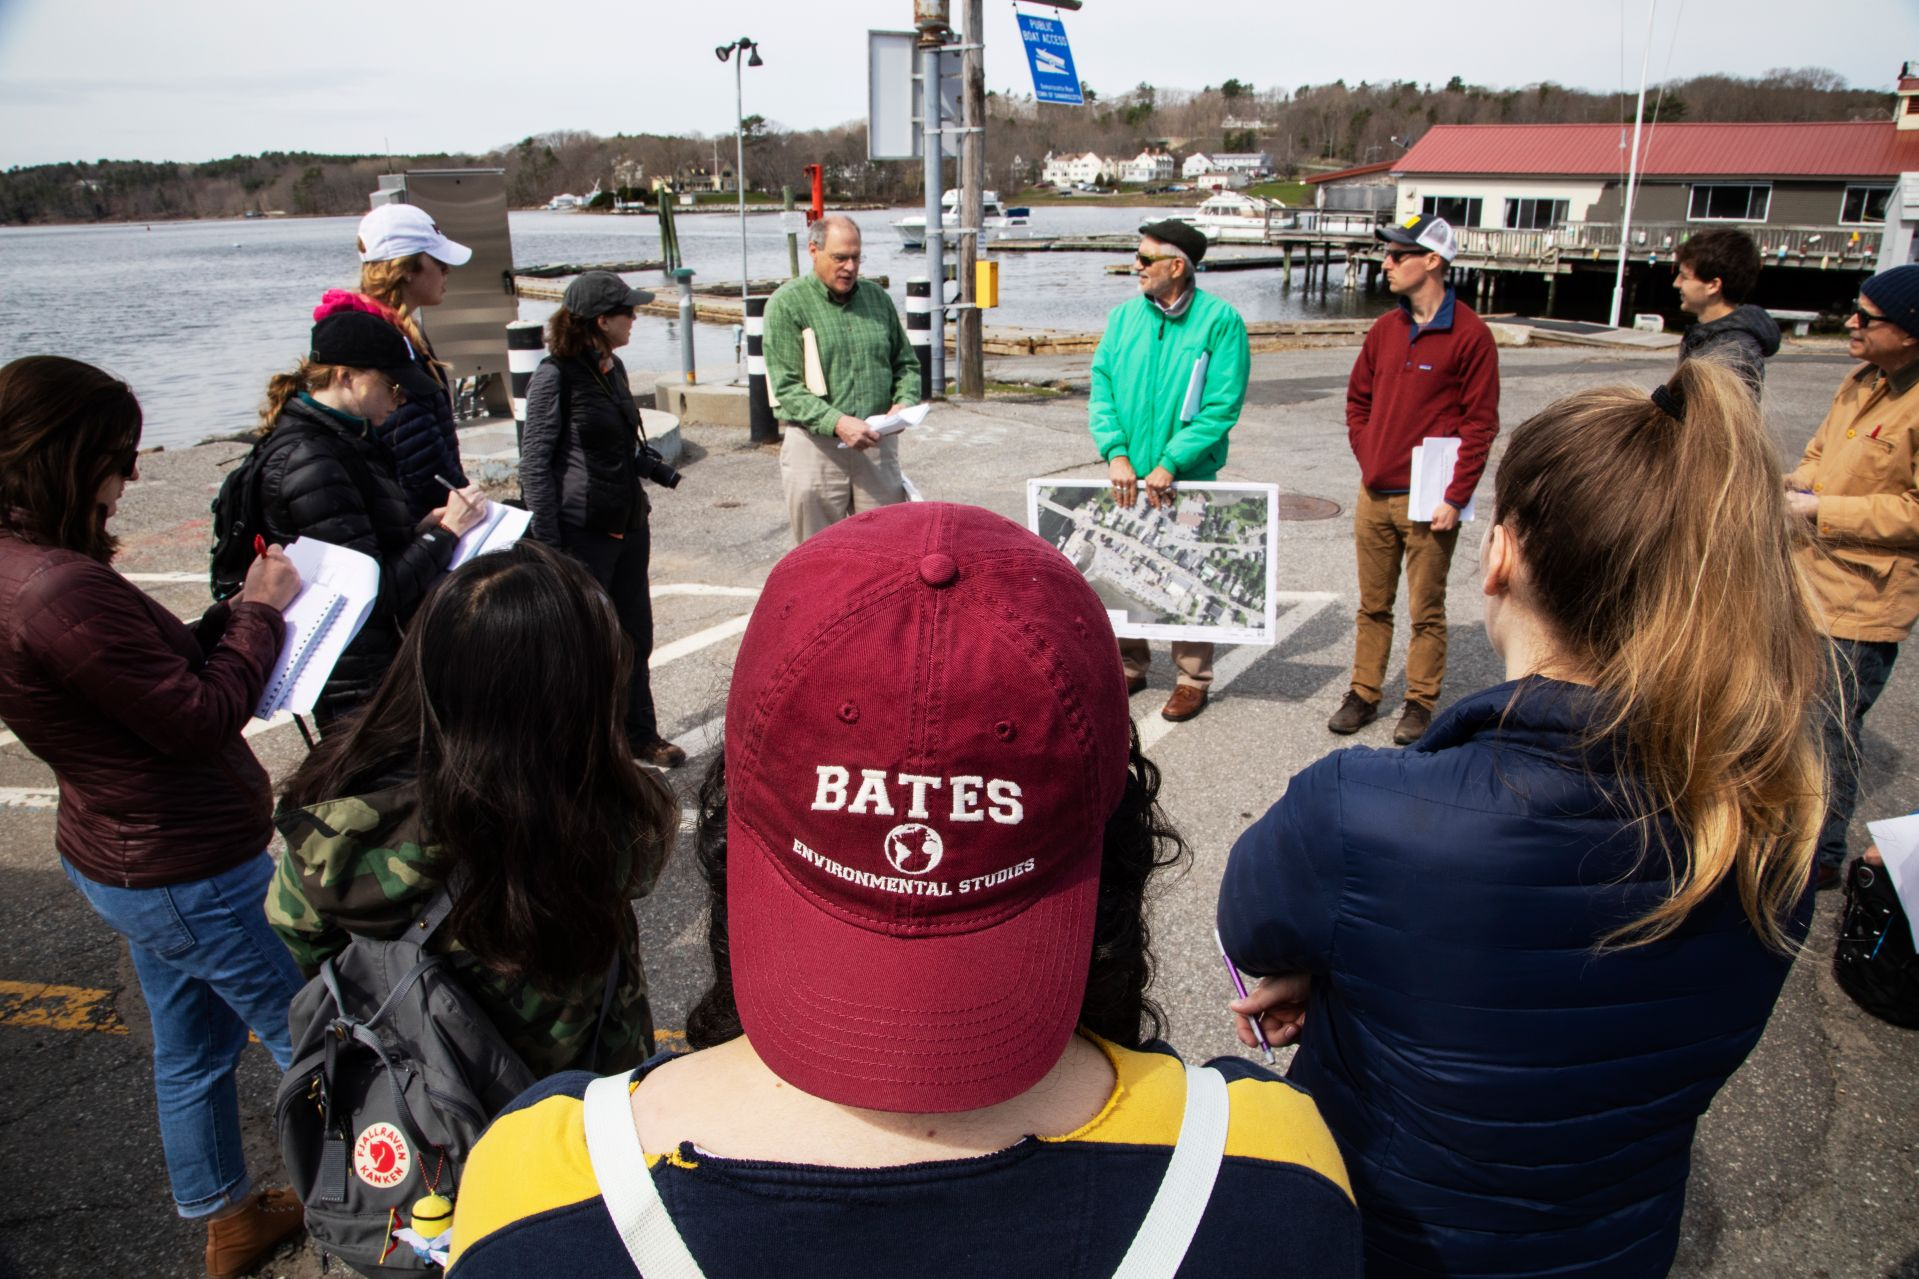 Bates students hear about flood response planning from Damariscotta Town Manager Matt Lutkus, center left, and former county planner Bob Faunce, center right, during their May 1 visit. (Theophil Syslo/Bates College)